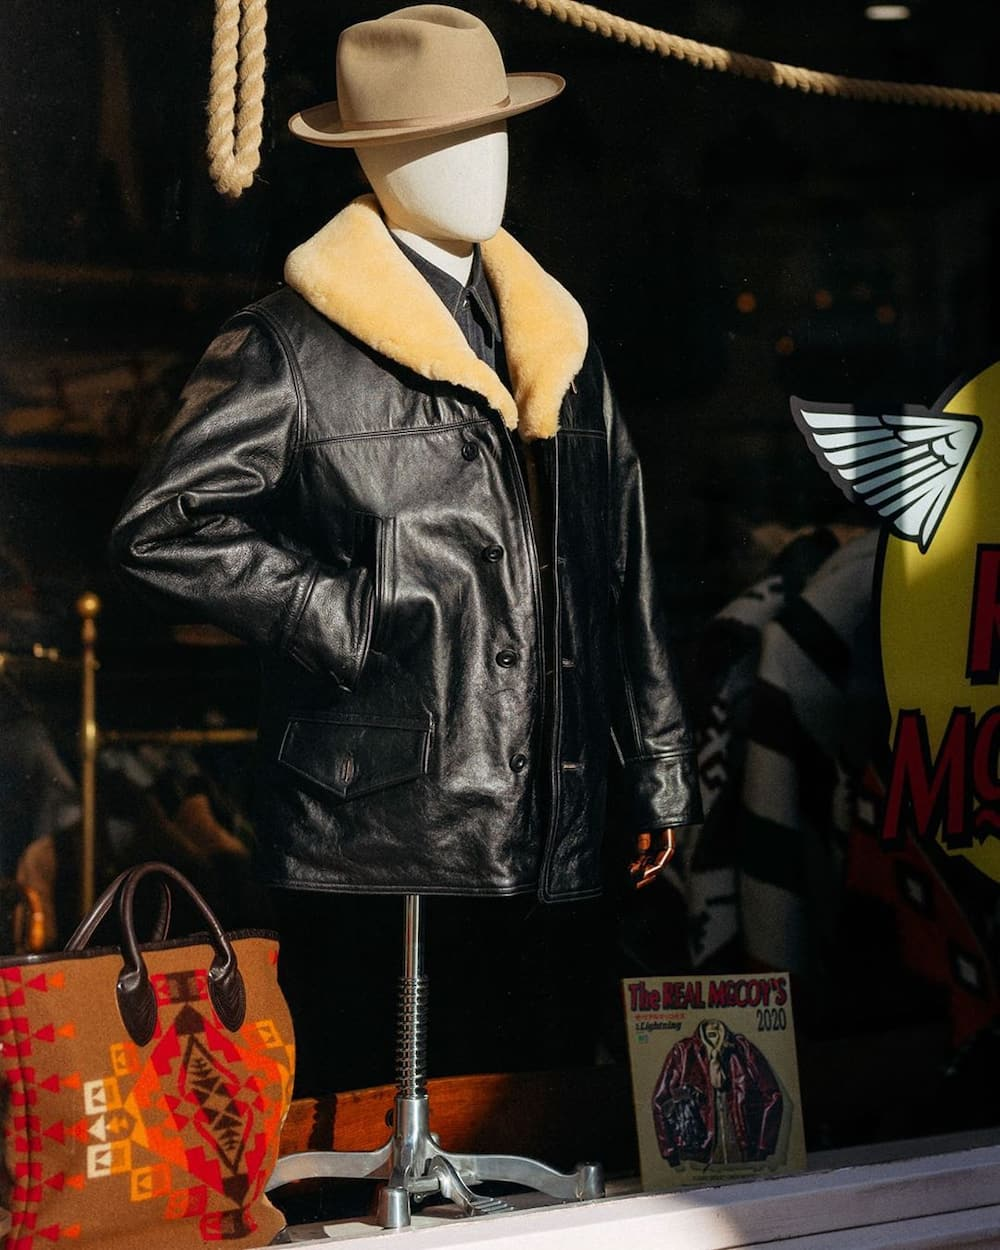 How do you care for a leather jacket?